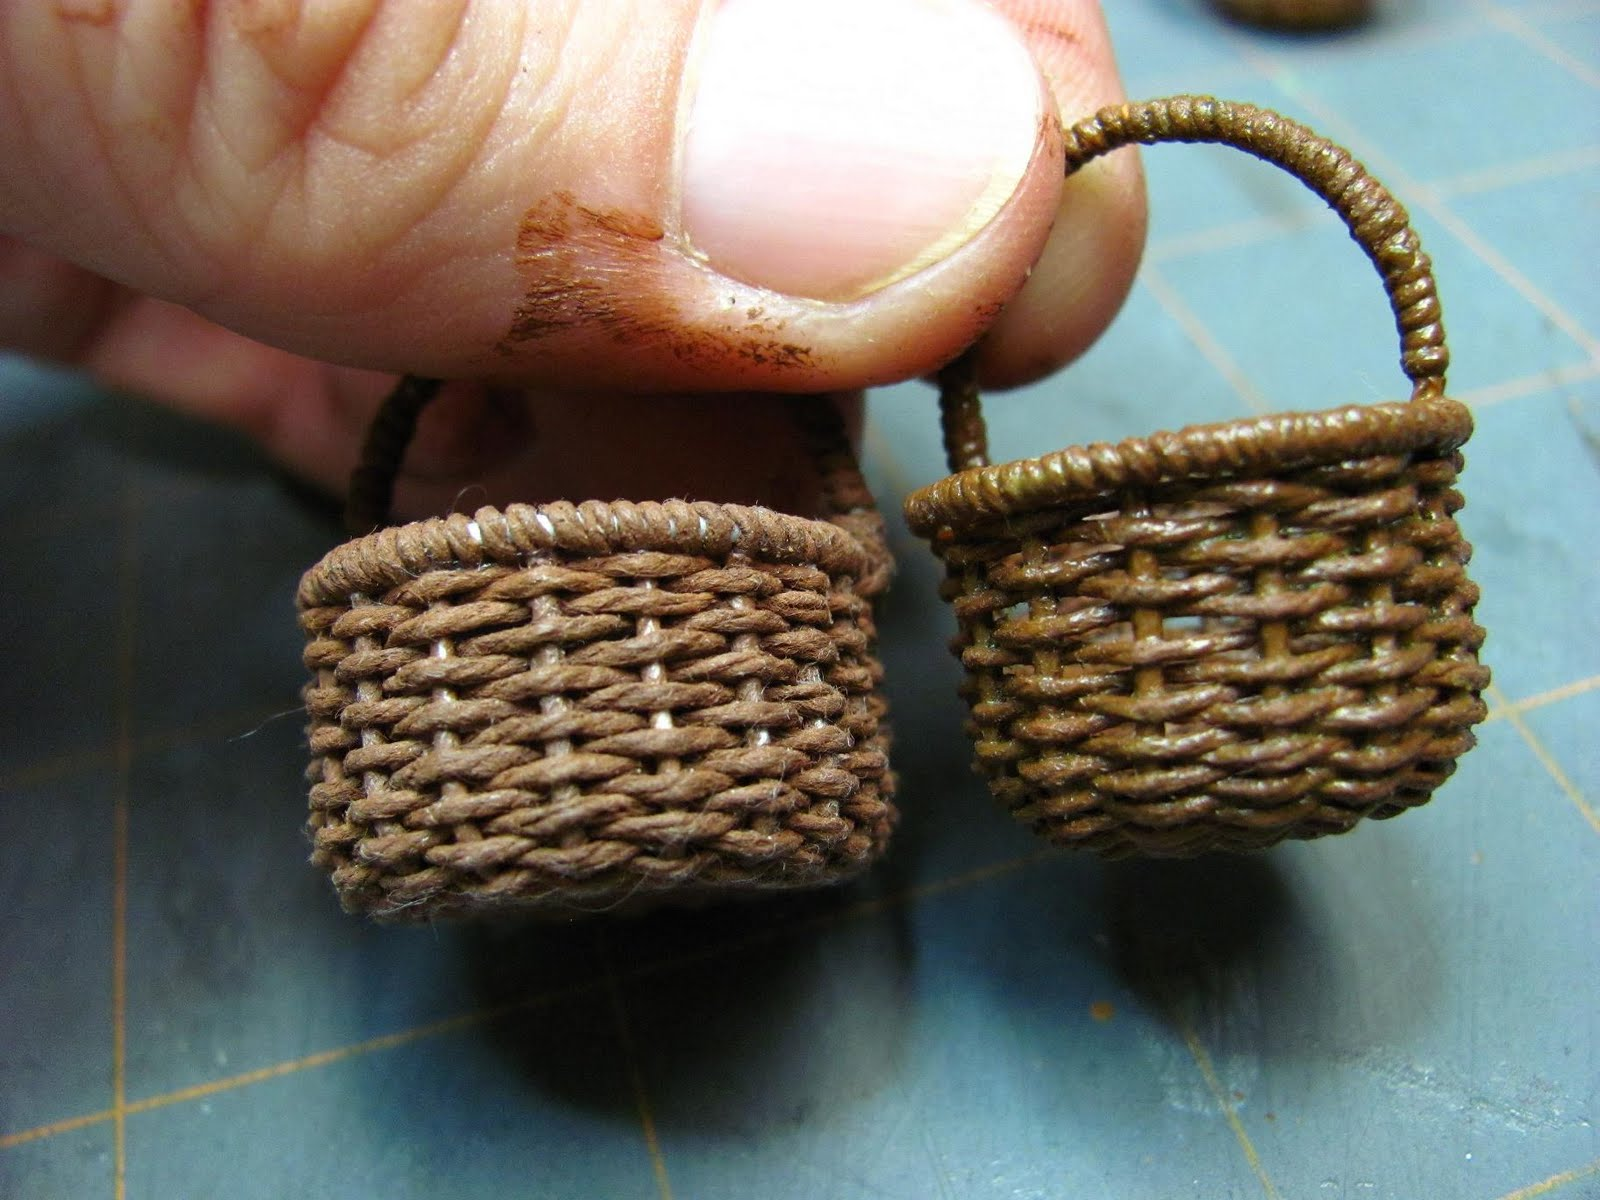 How To Make A Weave A Basket : Dollhouse miniature furniture tutorials inch minis